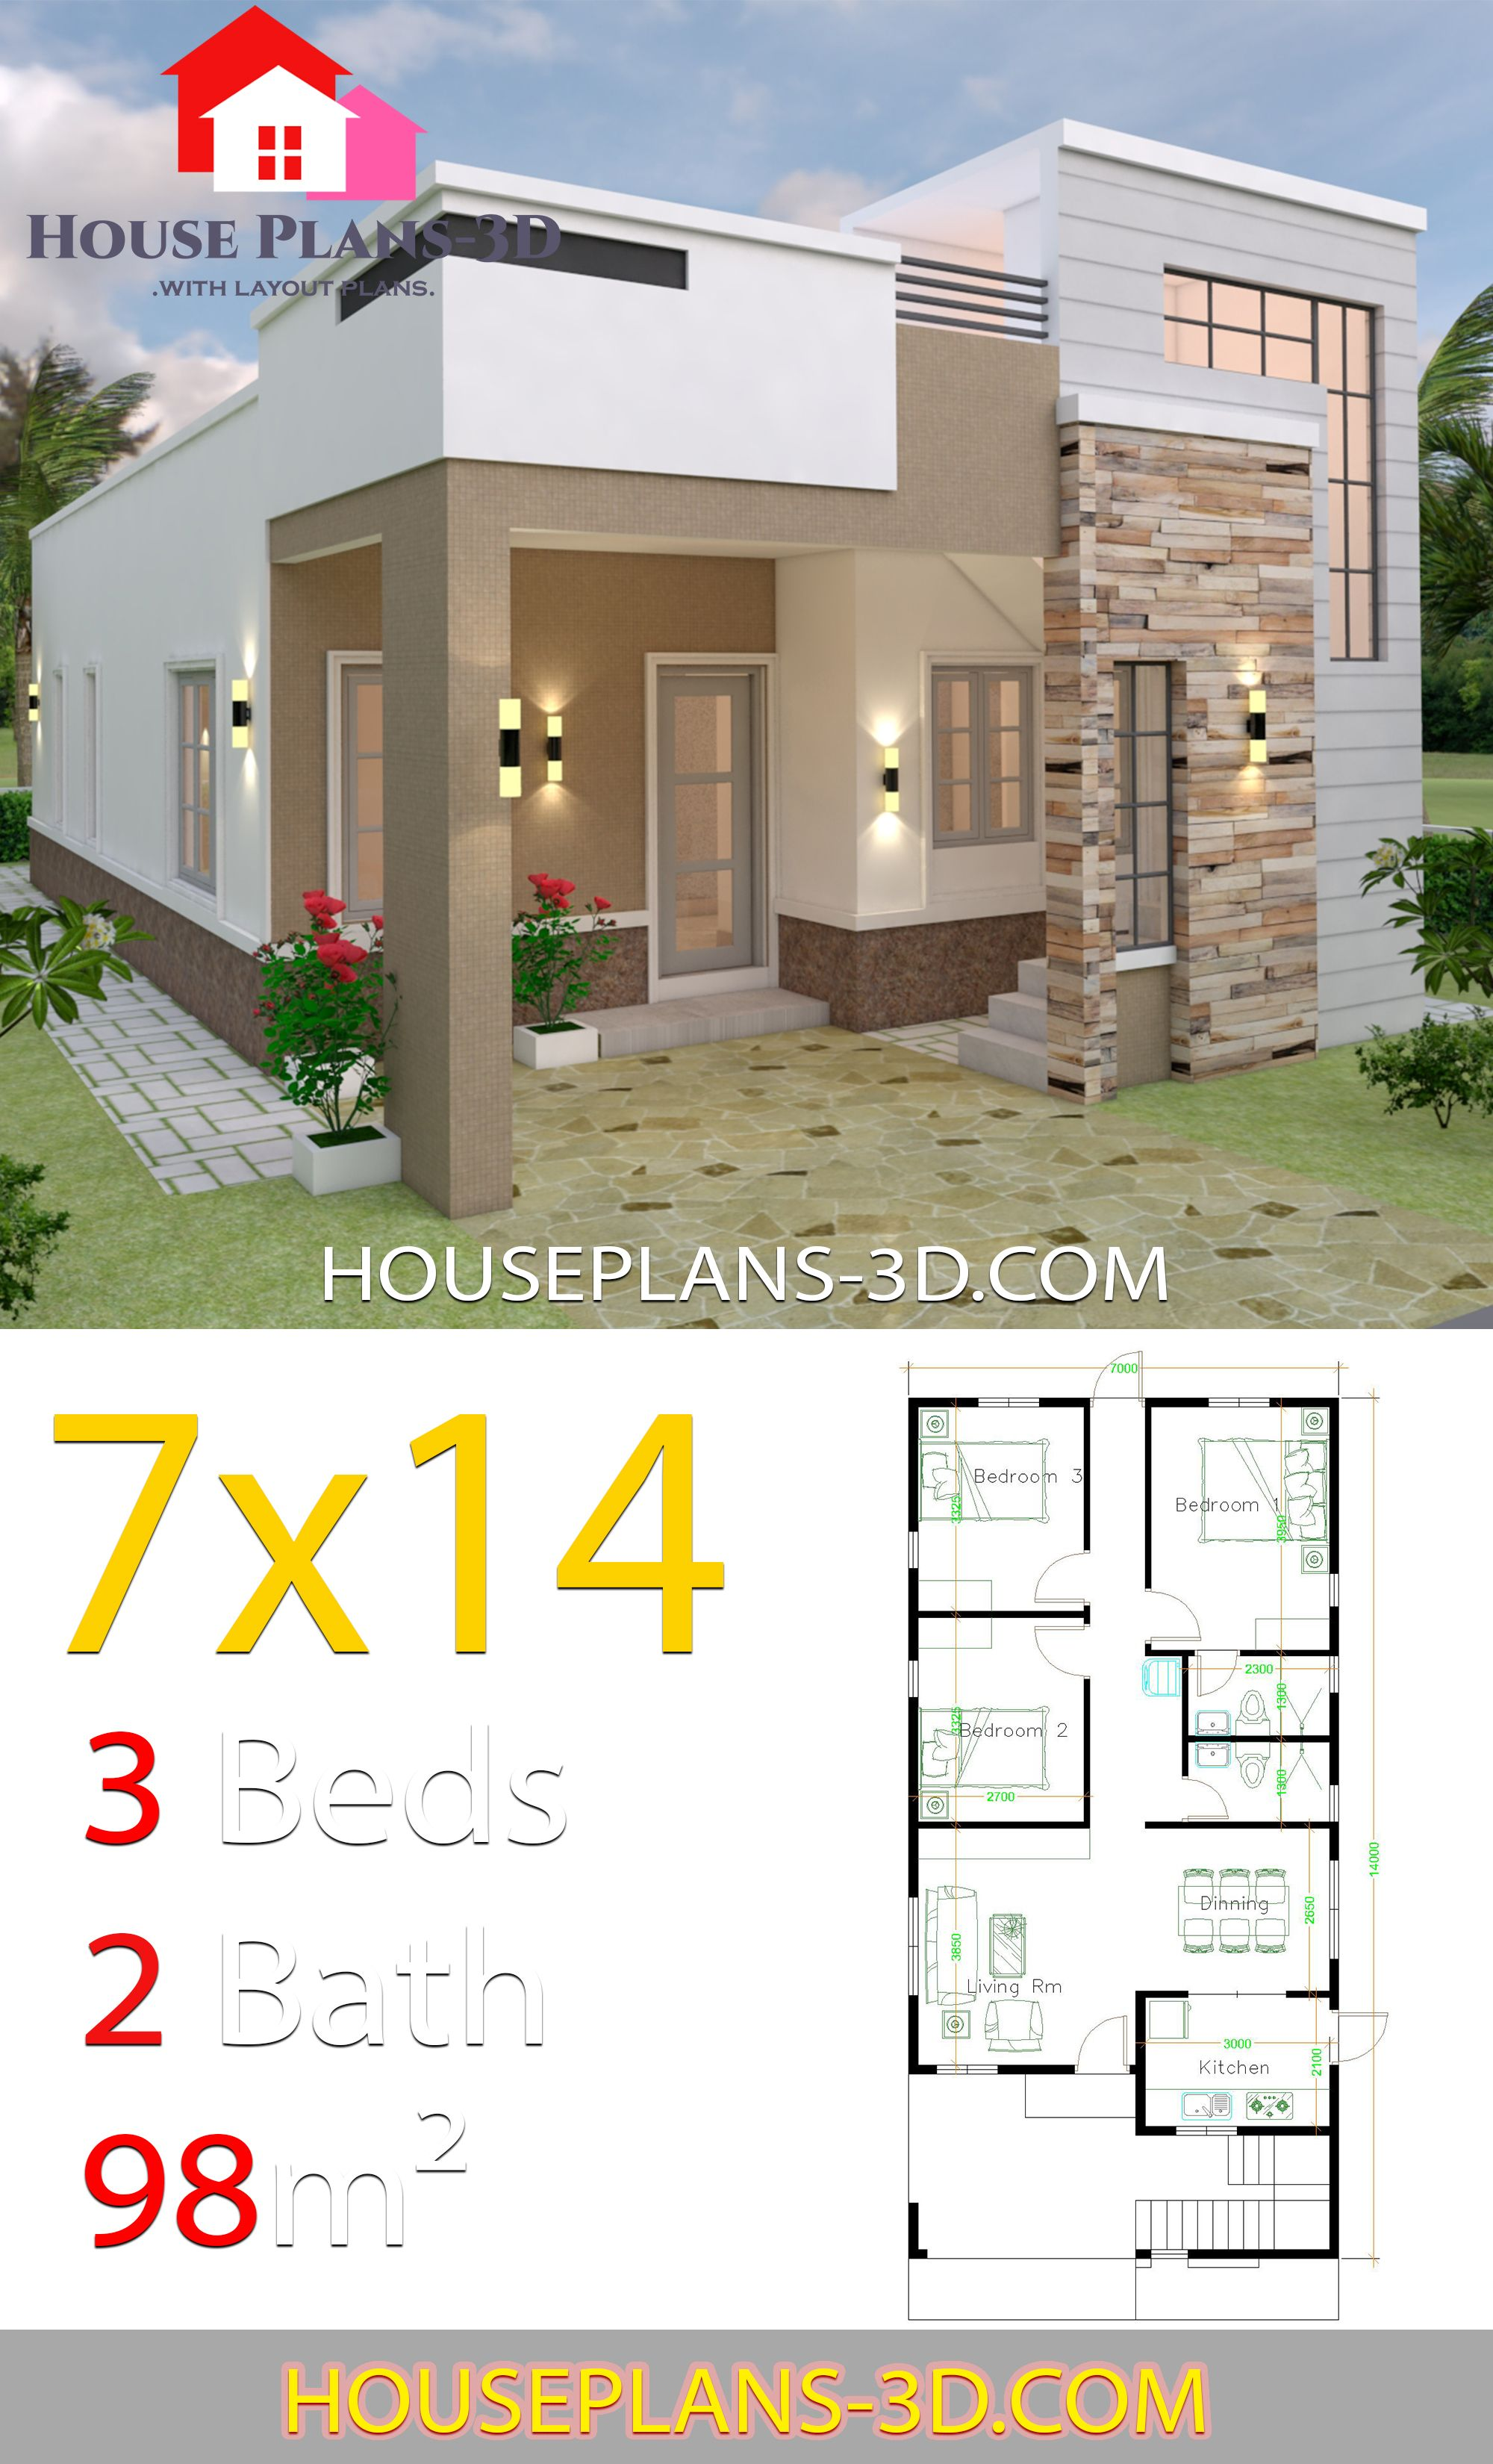 House Design 7x14 With 3 Bedrooms Terrace Roof House Plans 3d Croquis De Casas Pequenas Planos De Casas Medidas Casas Modernas Simples